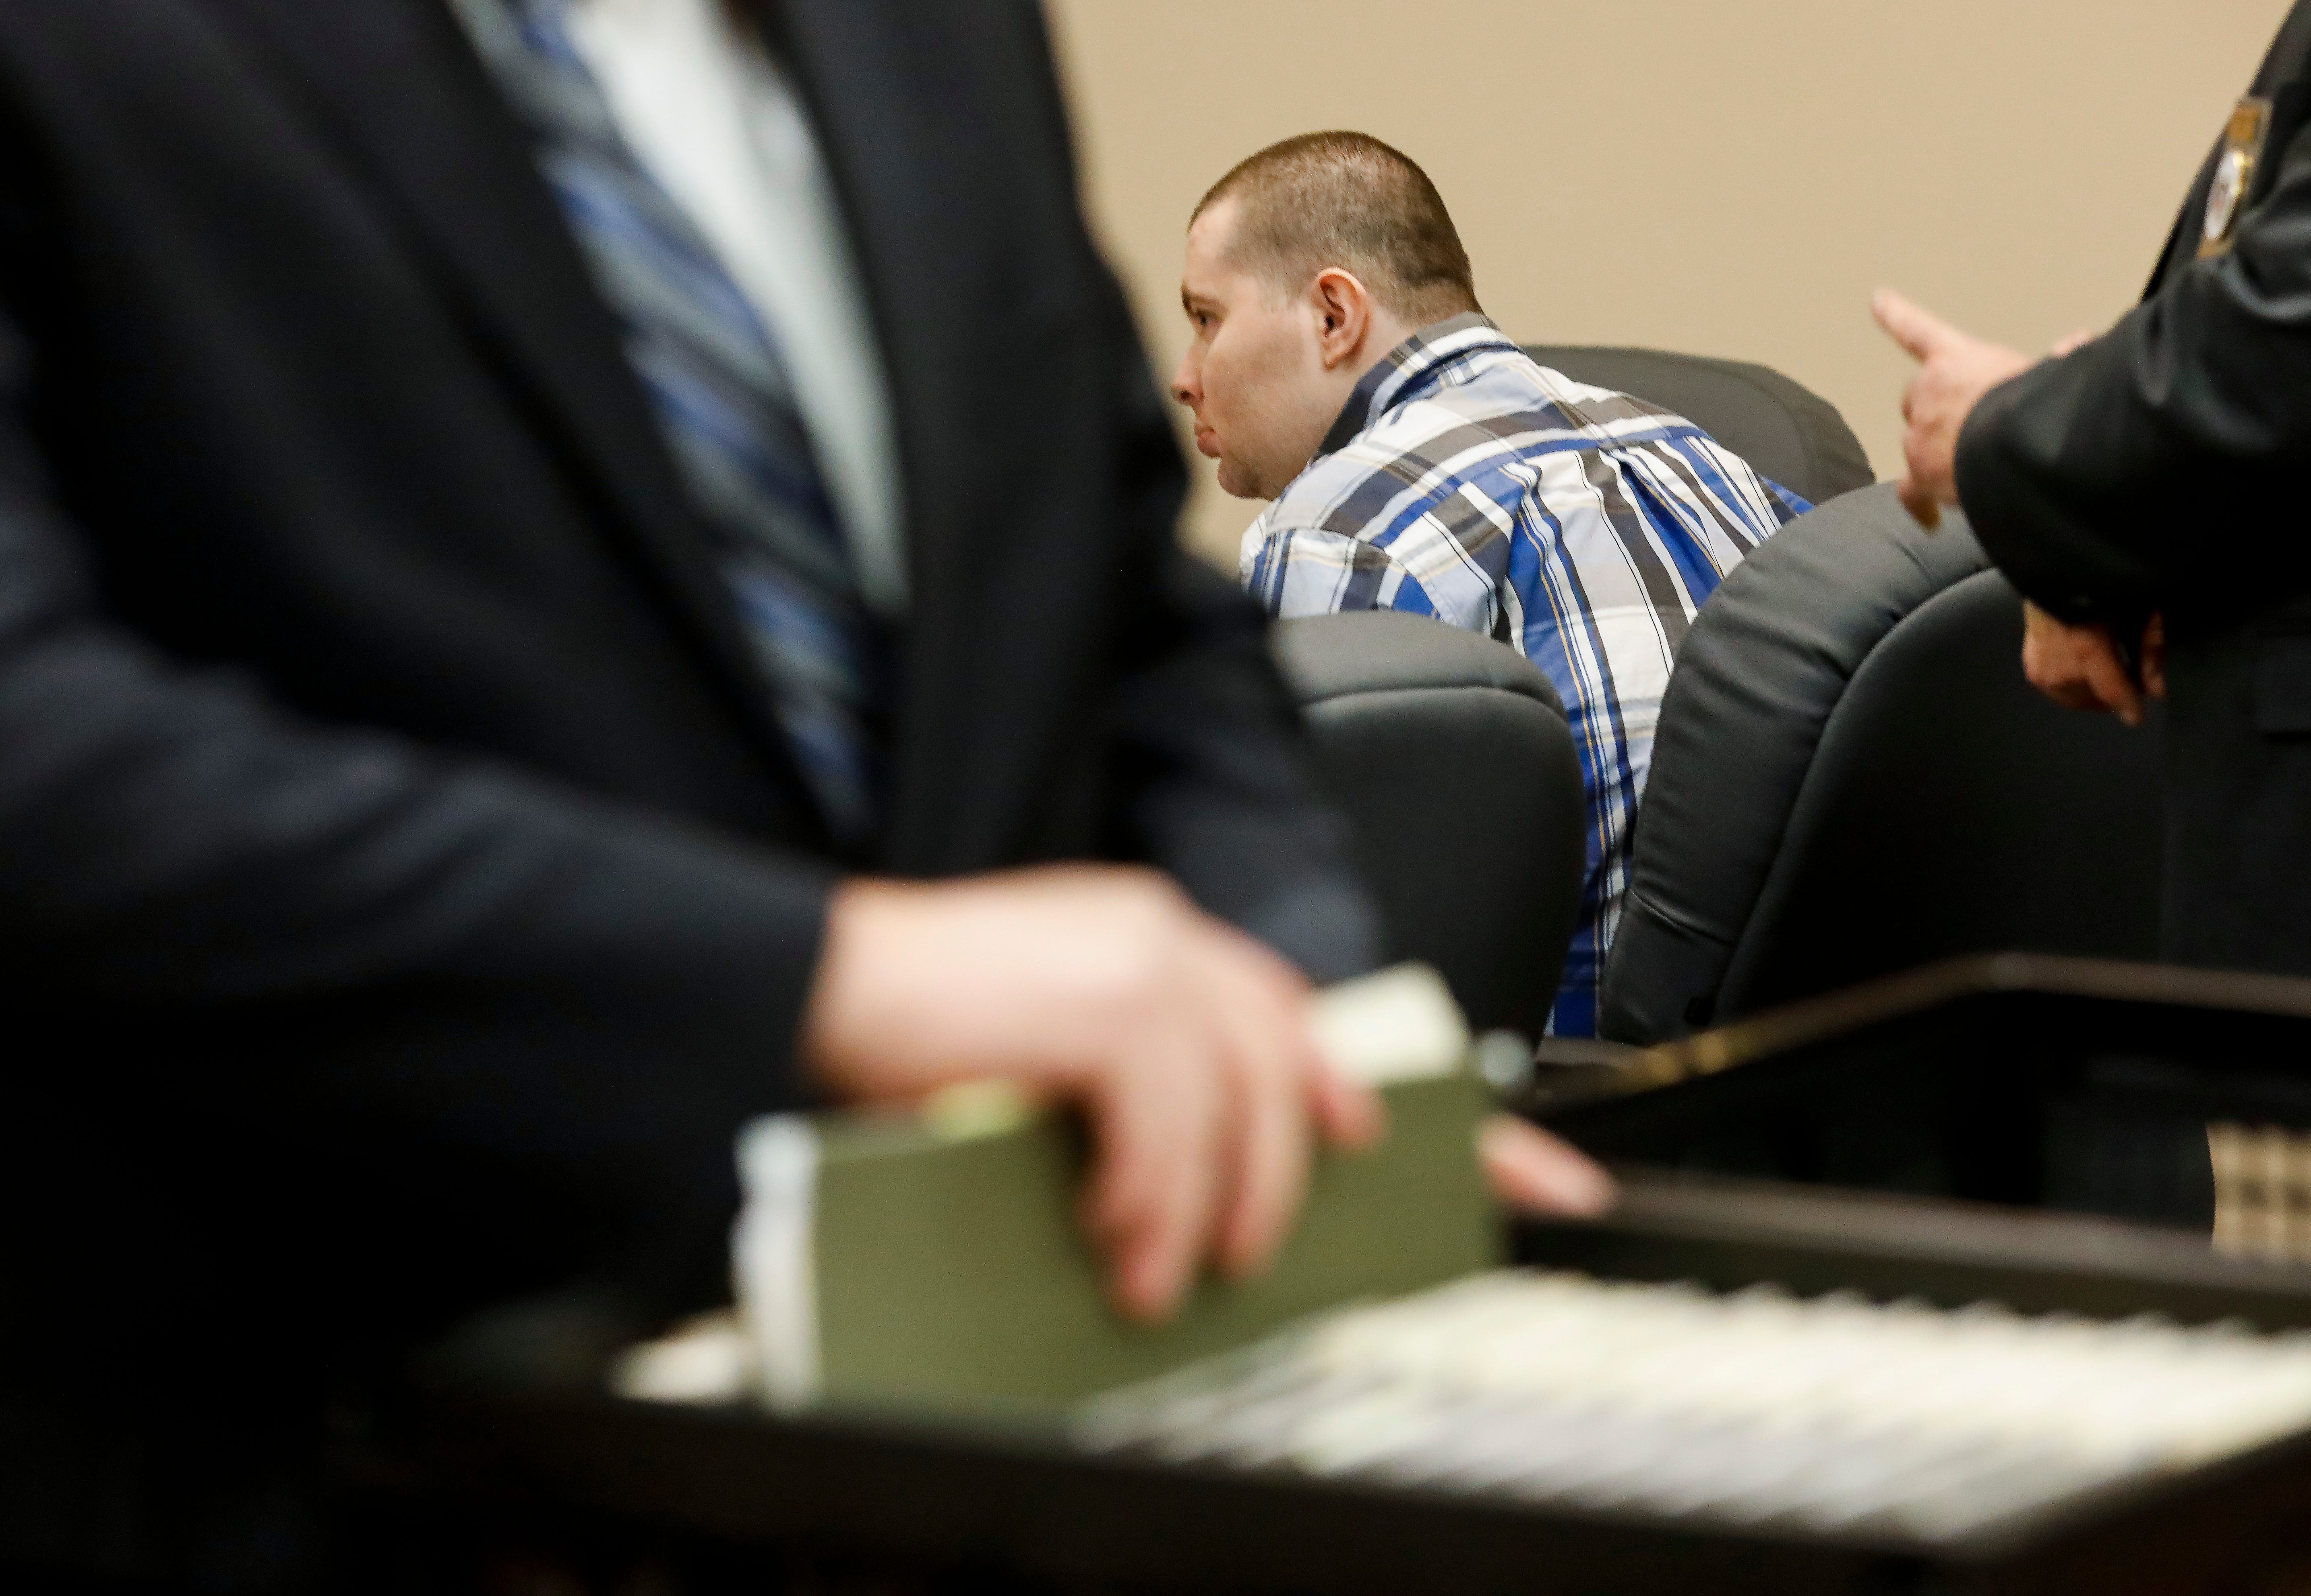 """Nicholas Godejohn, 29, who is charged with first-degree murder in the June 2015 killing of 48-year-old Clauddine """"Dee Dee"""" Blanchard, sits in the courtroom on the second day of his trial on Wednesday, Nov. 14, 2018."""